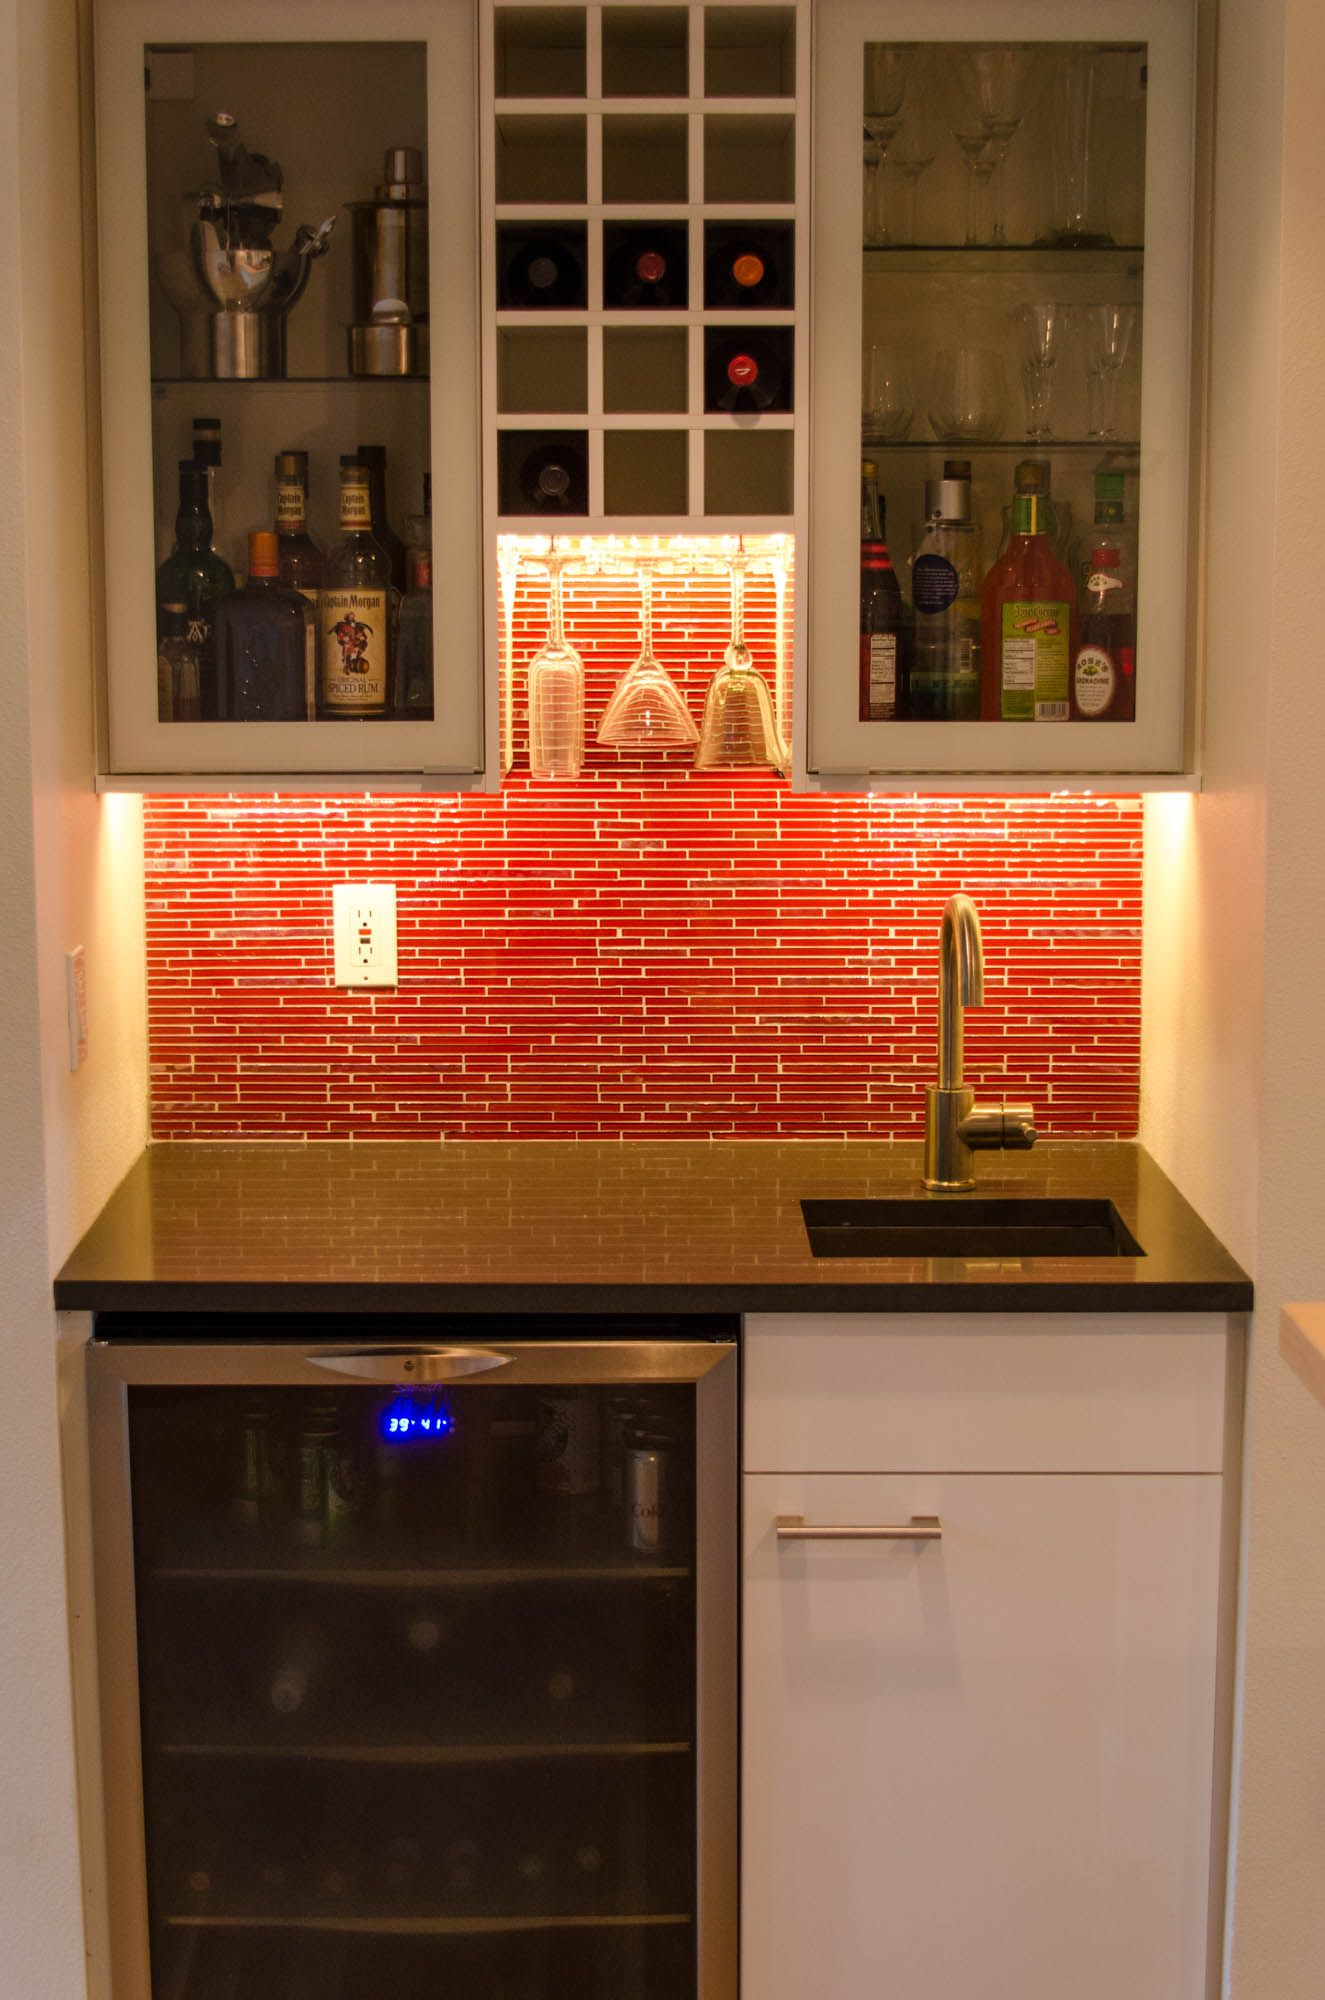 Kitchen Sink Cabinet Design ikea wet bar cabinets with sink in small kitche red backsplash